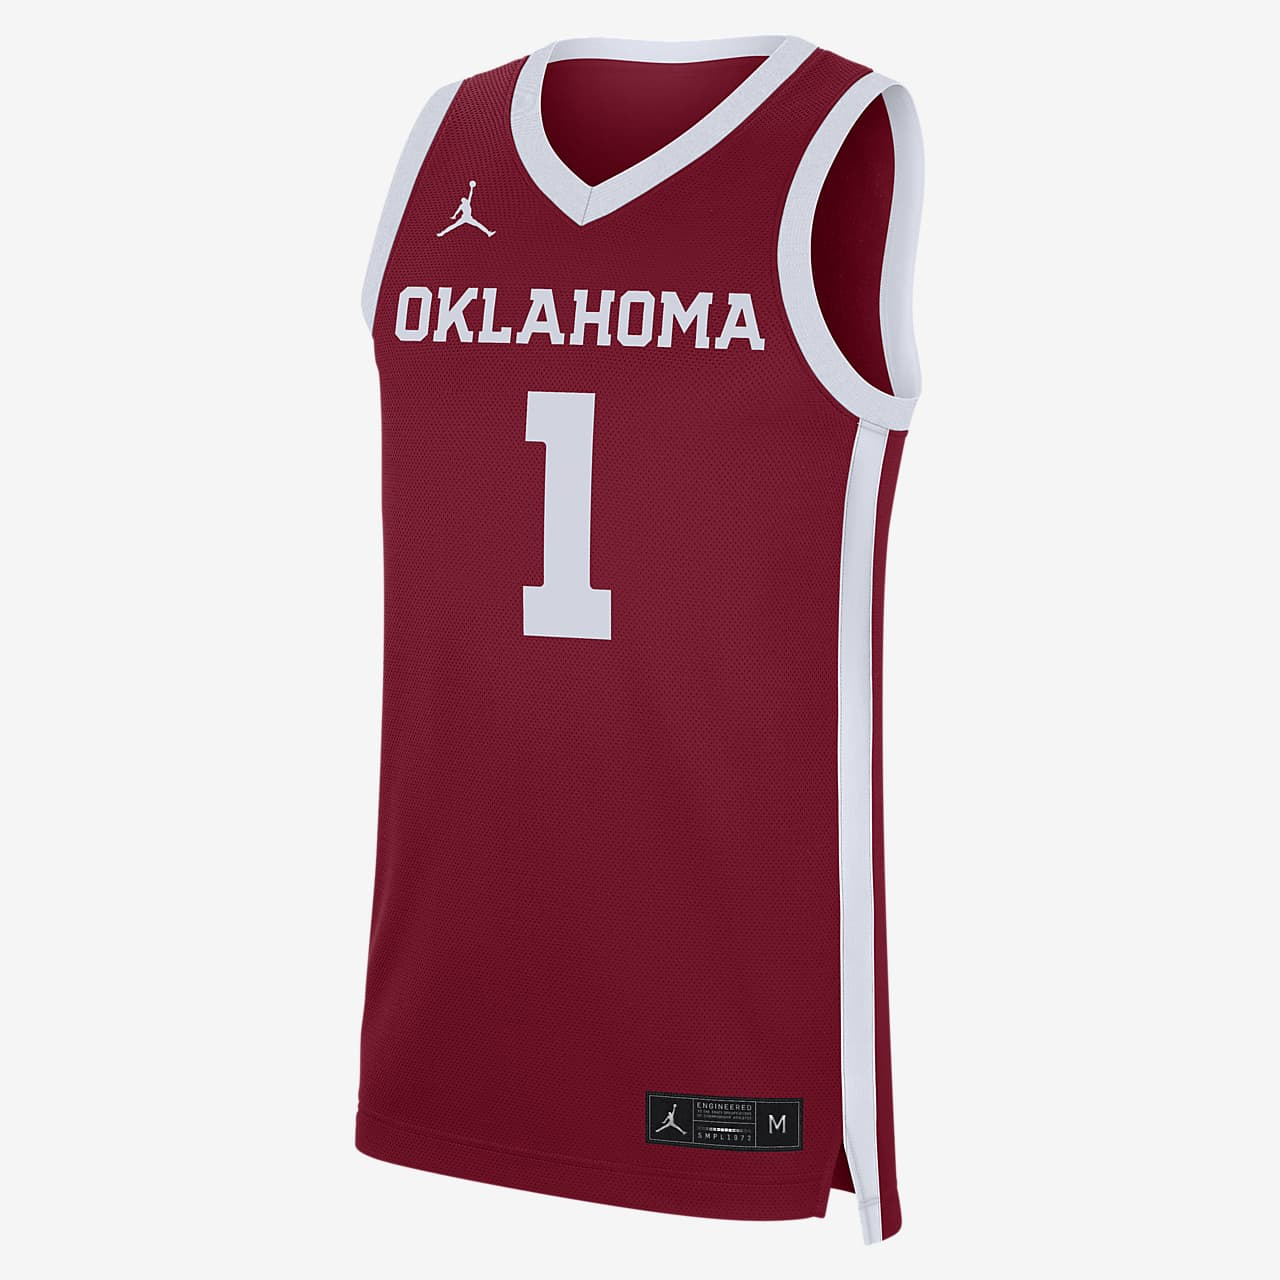 Nike College Replica (Oklahoma) Men's Basketball Jersey